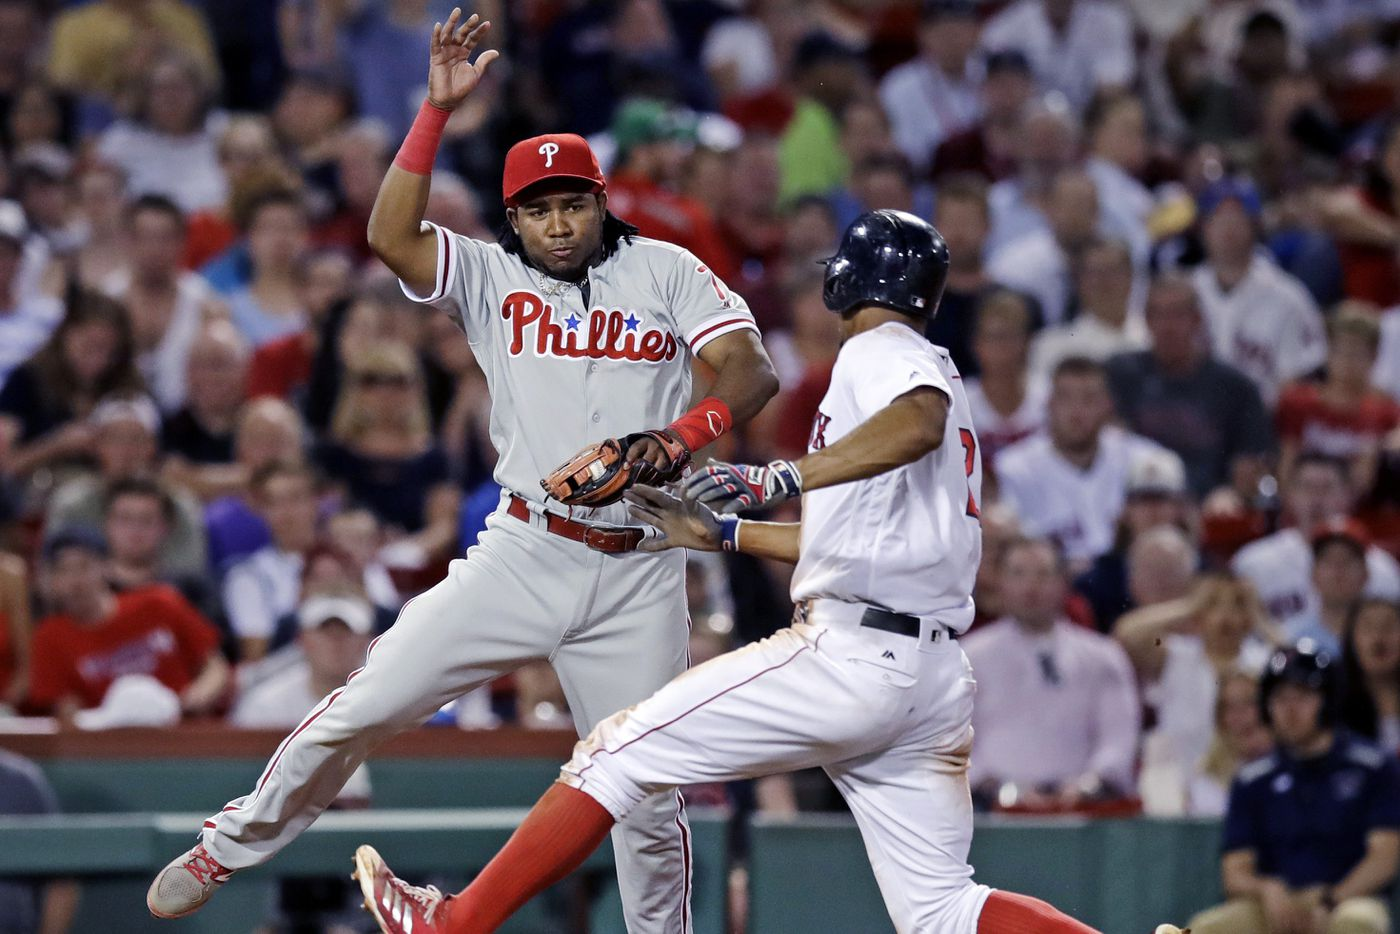 Phillies' road gets even tougher with a trip to Fenway   Series preview